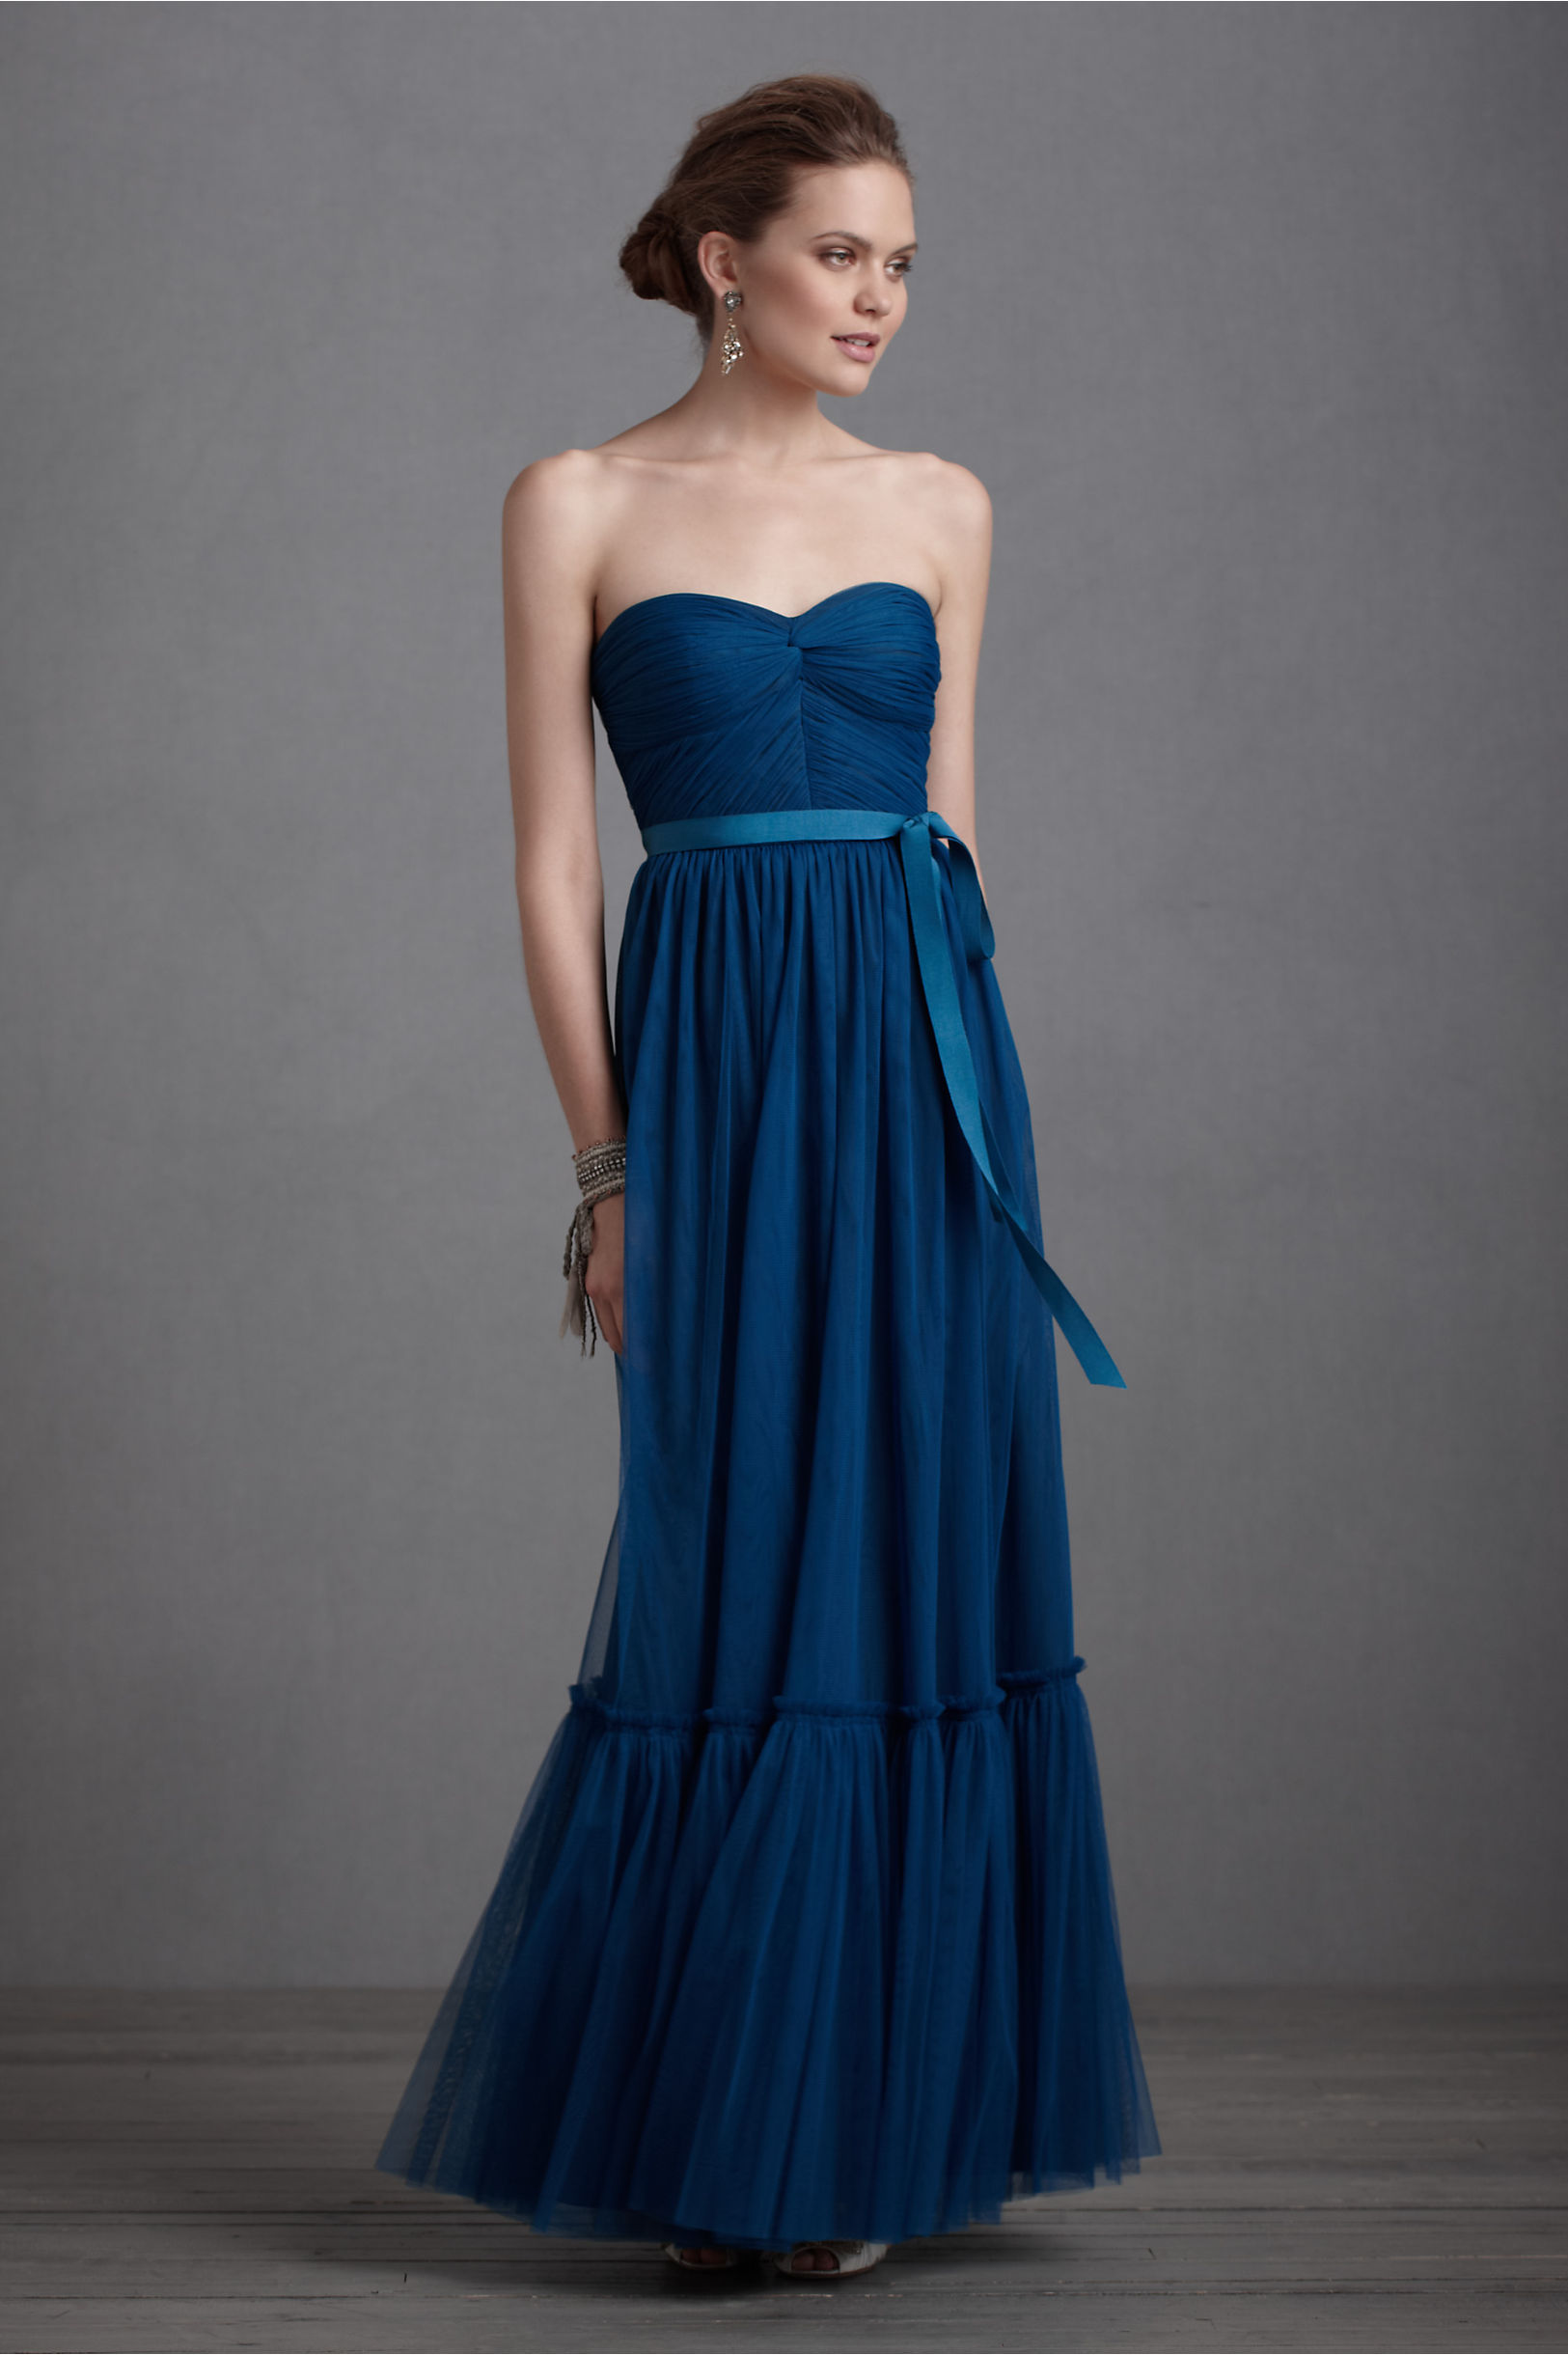 Niceties dress in bridal party bhldn peacock blue niceties dress bhldn ombrellifo Image collections